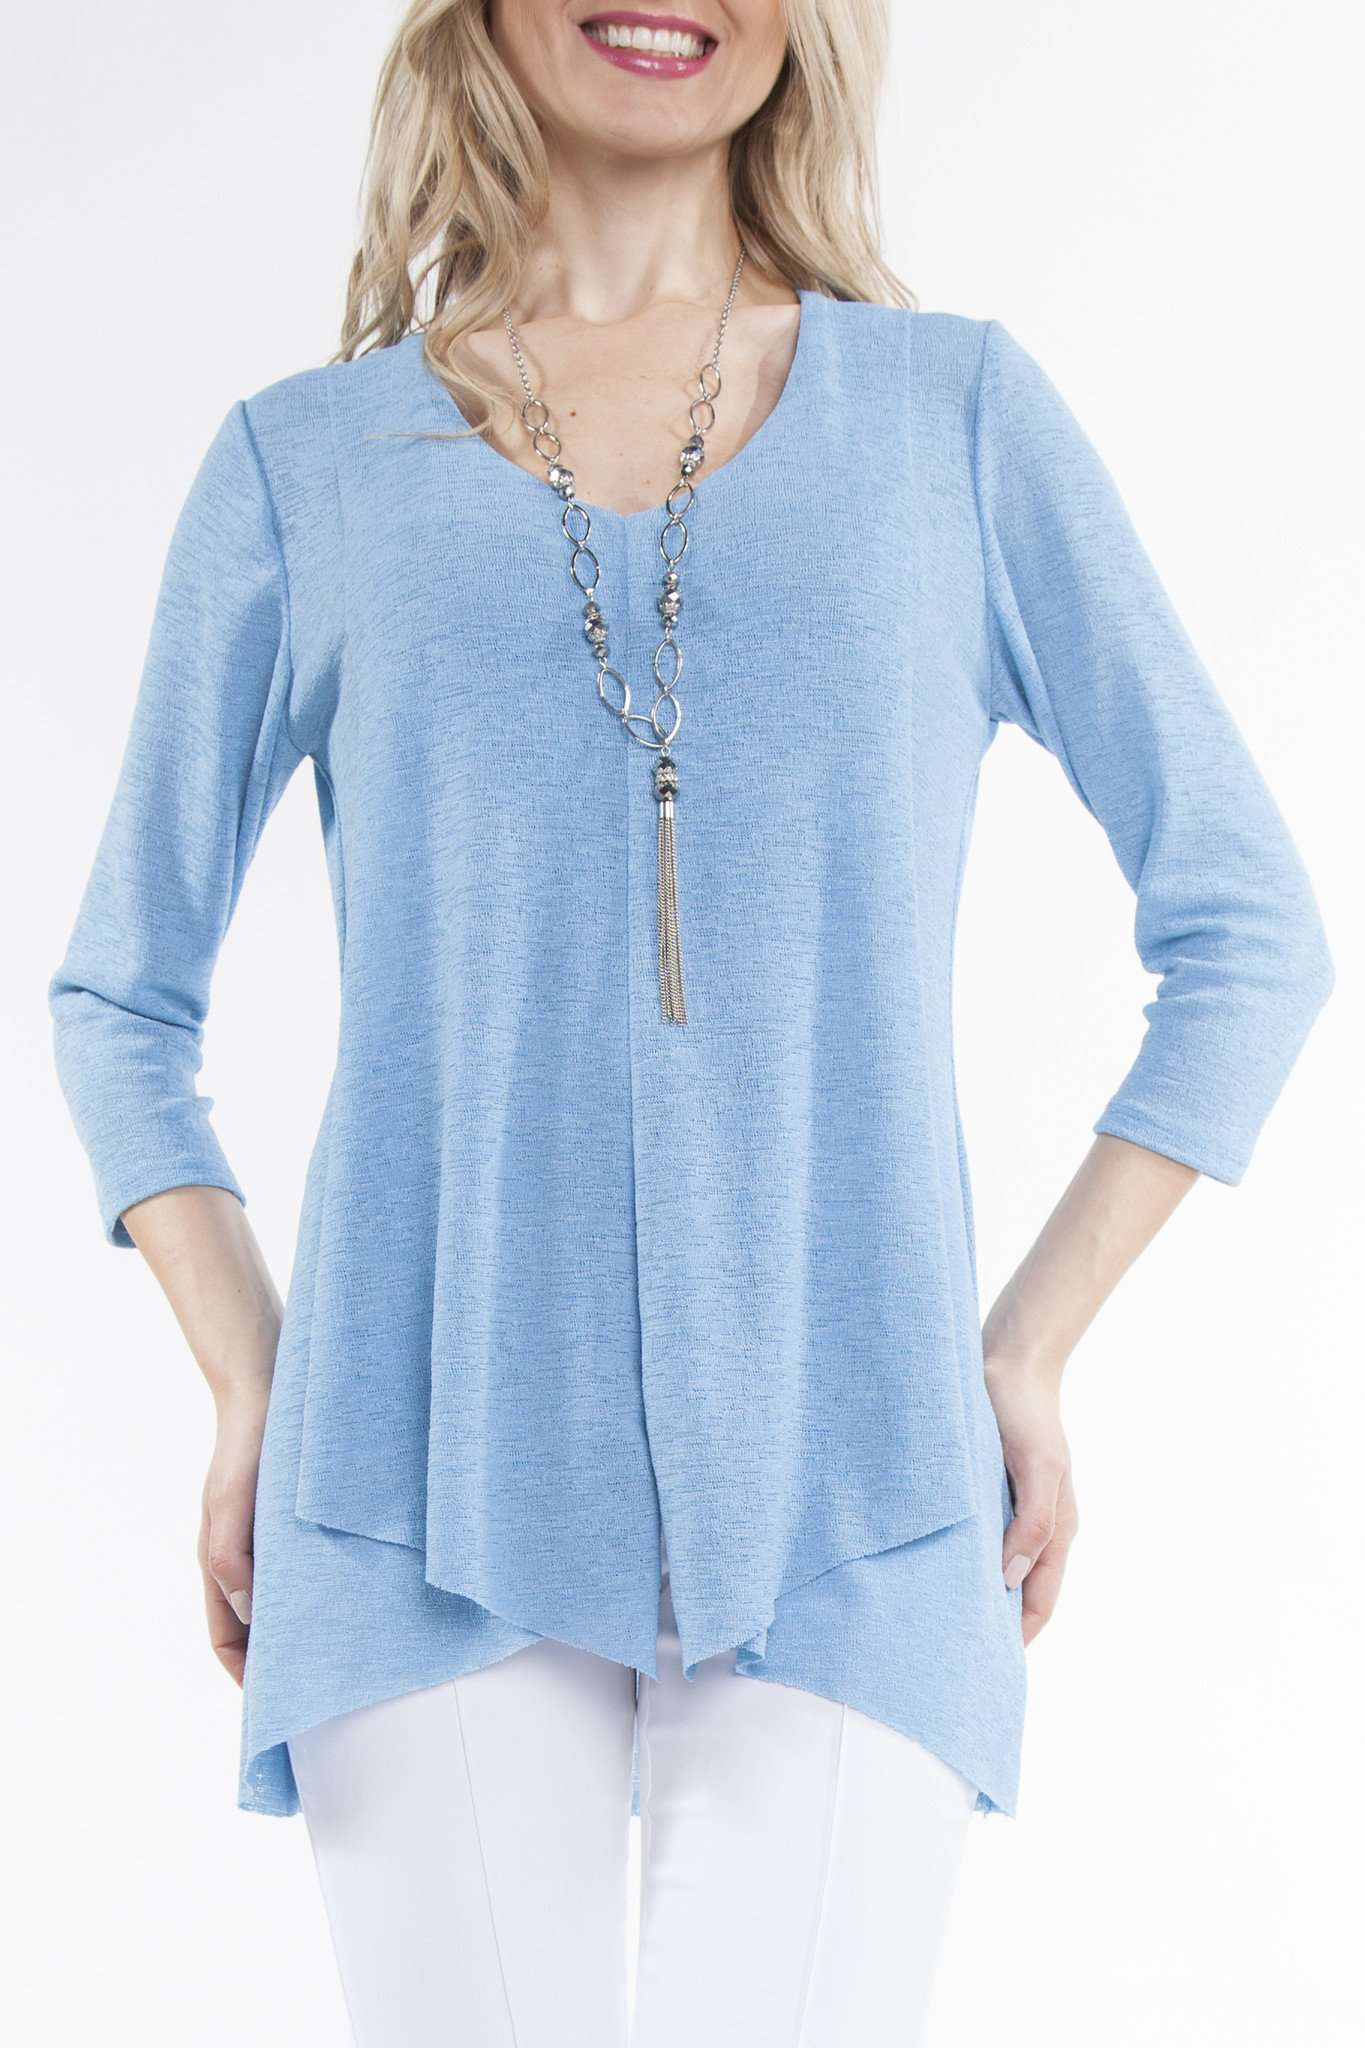 Women's Long Blue Tunic Top - Yvonne Marie - Yvonne Marie